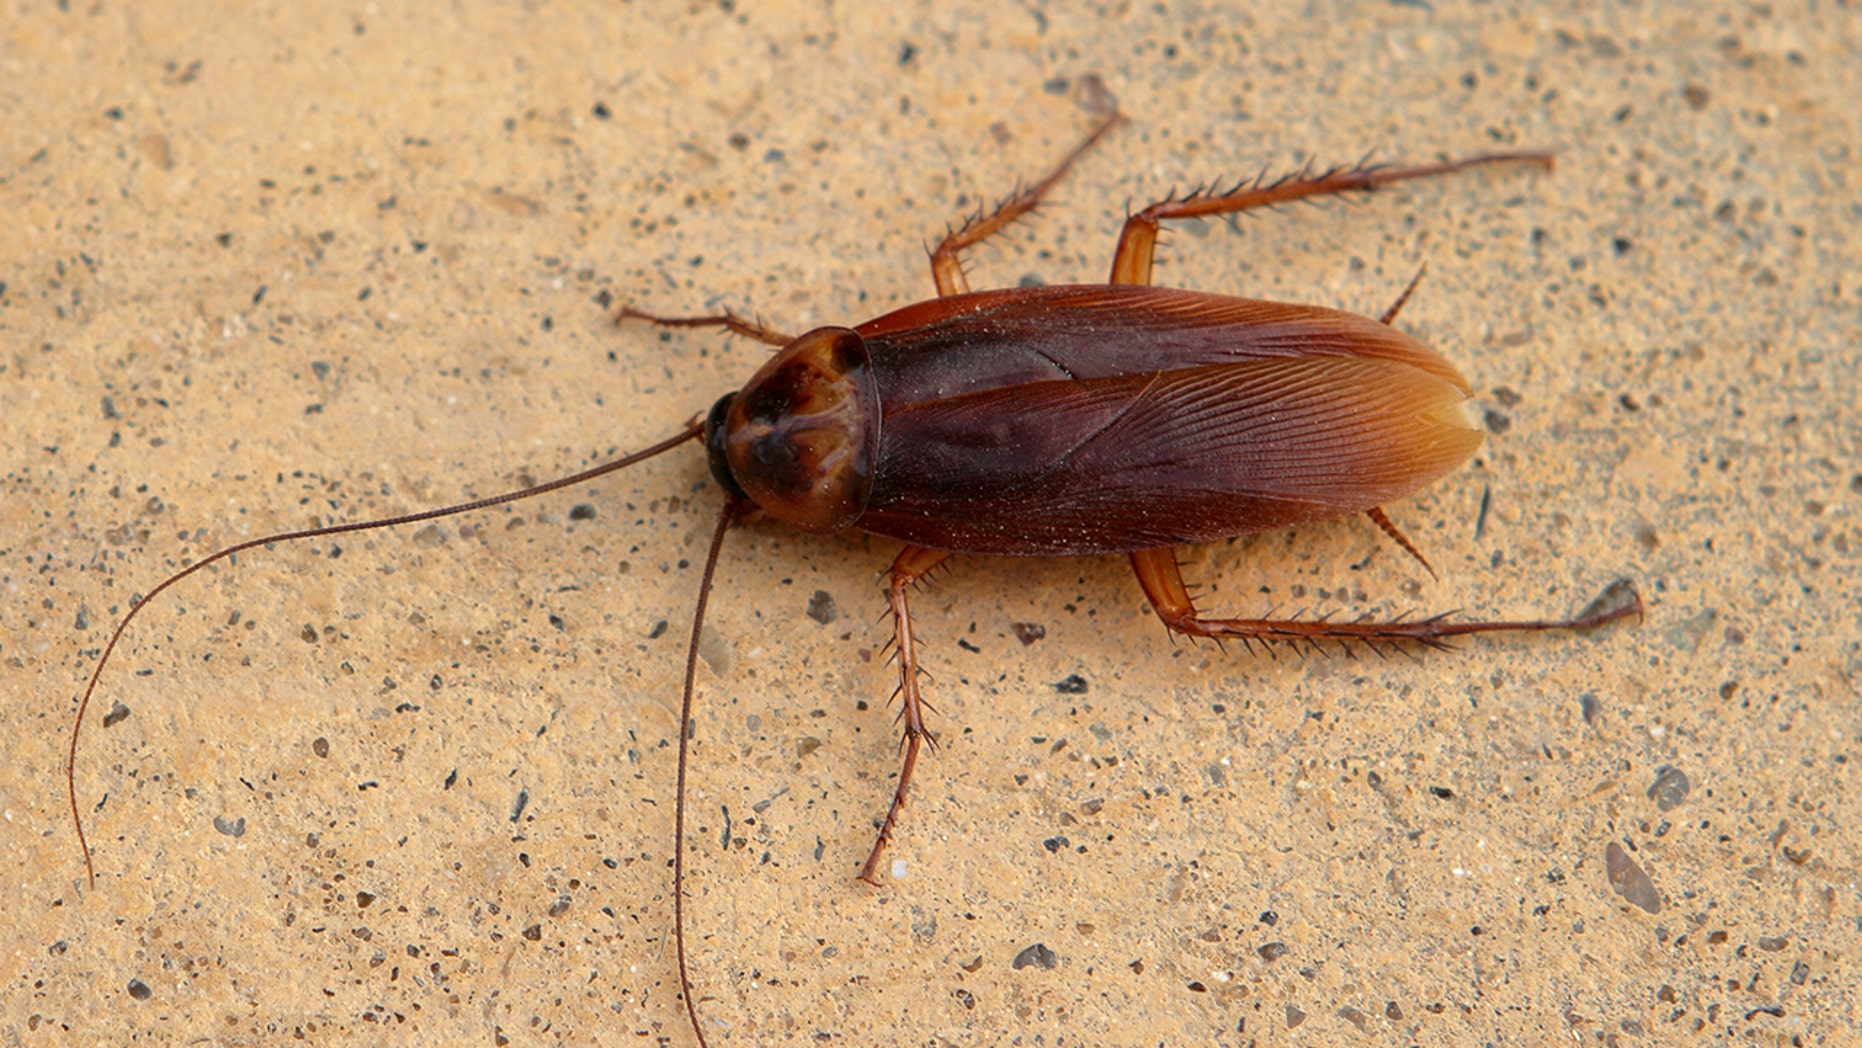 Roaches on a plane! Over 100 of the insects were discovered on two planes at a Chinese airport